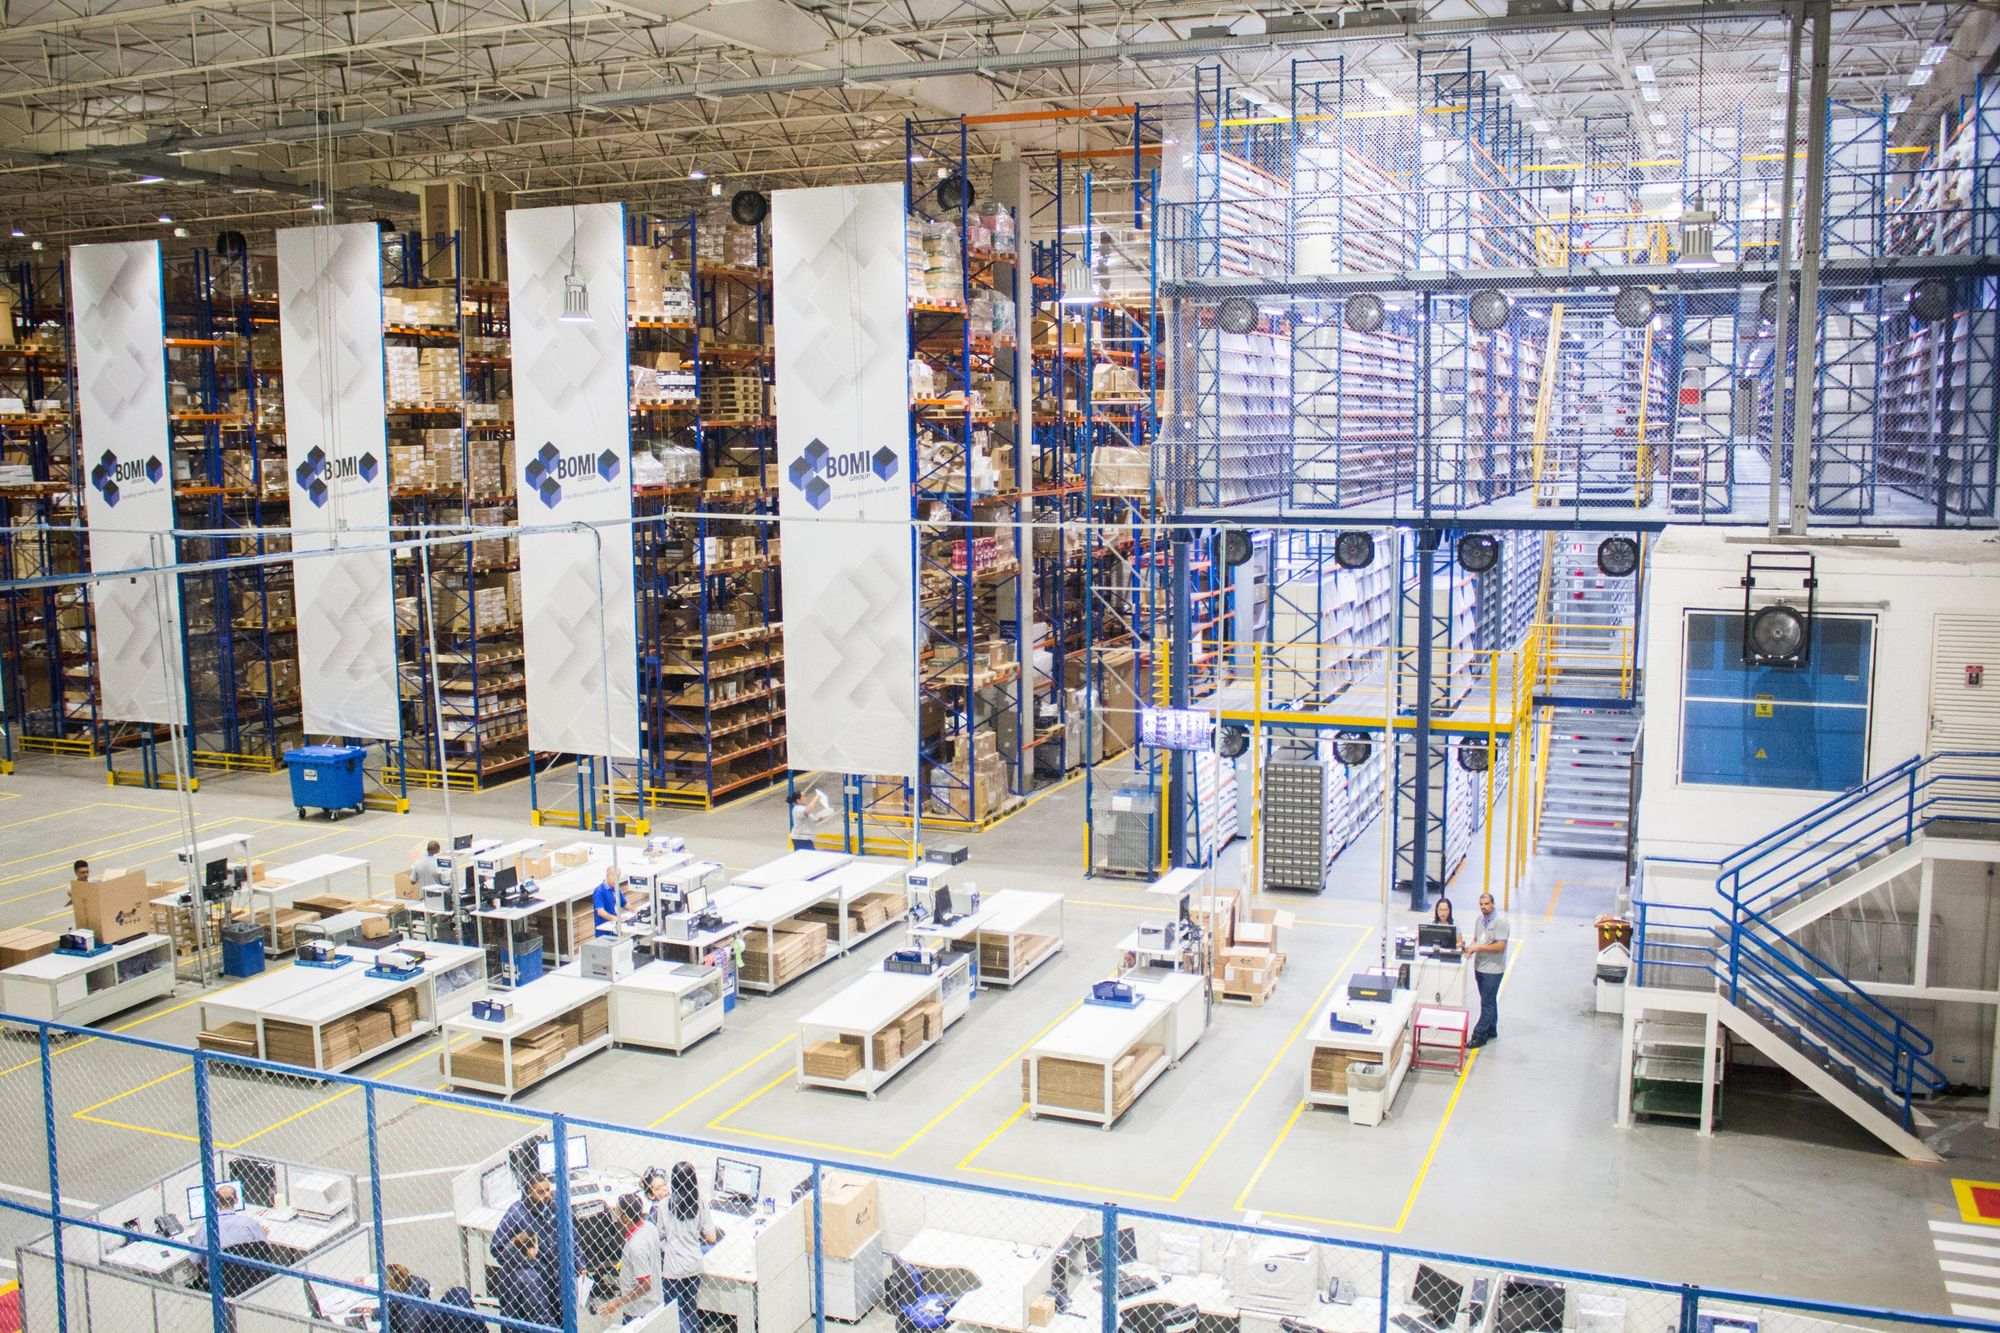 For those selling on Amazon, FBA warehouses are a critical component to success